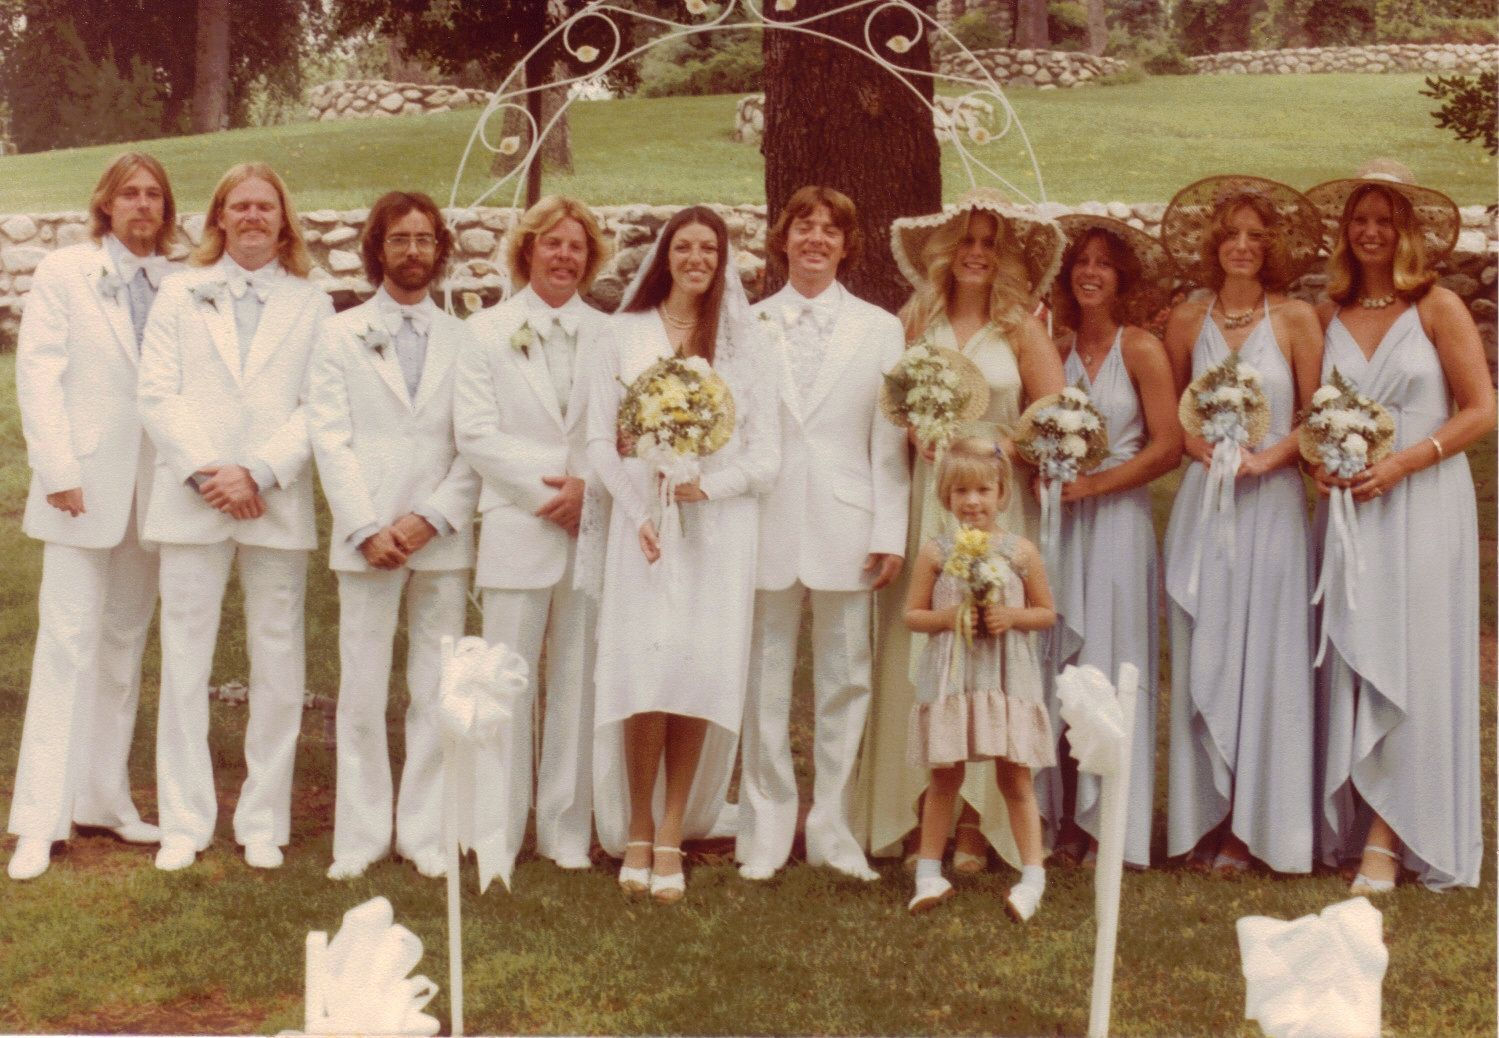 1970s Real Vintage Weddings